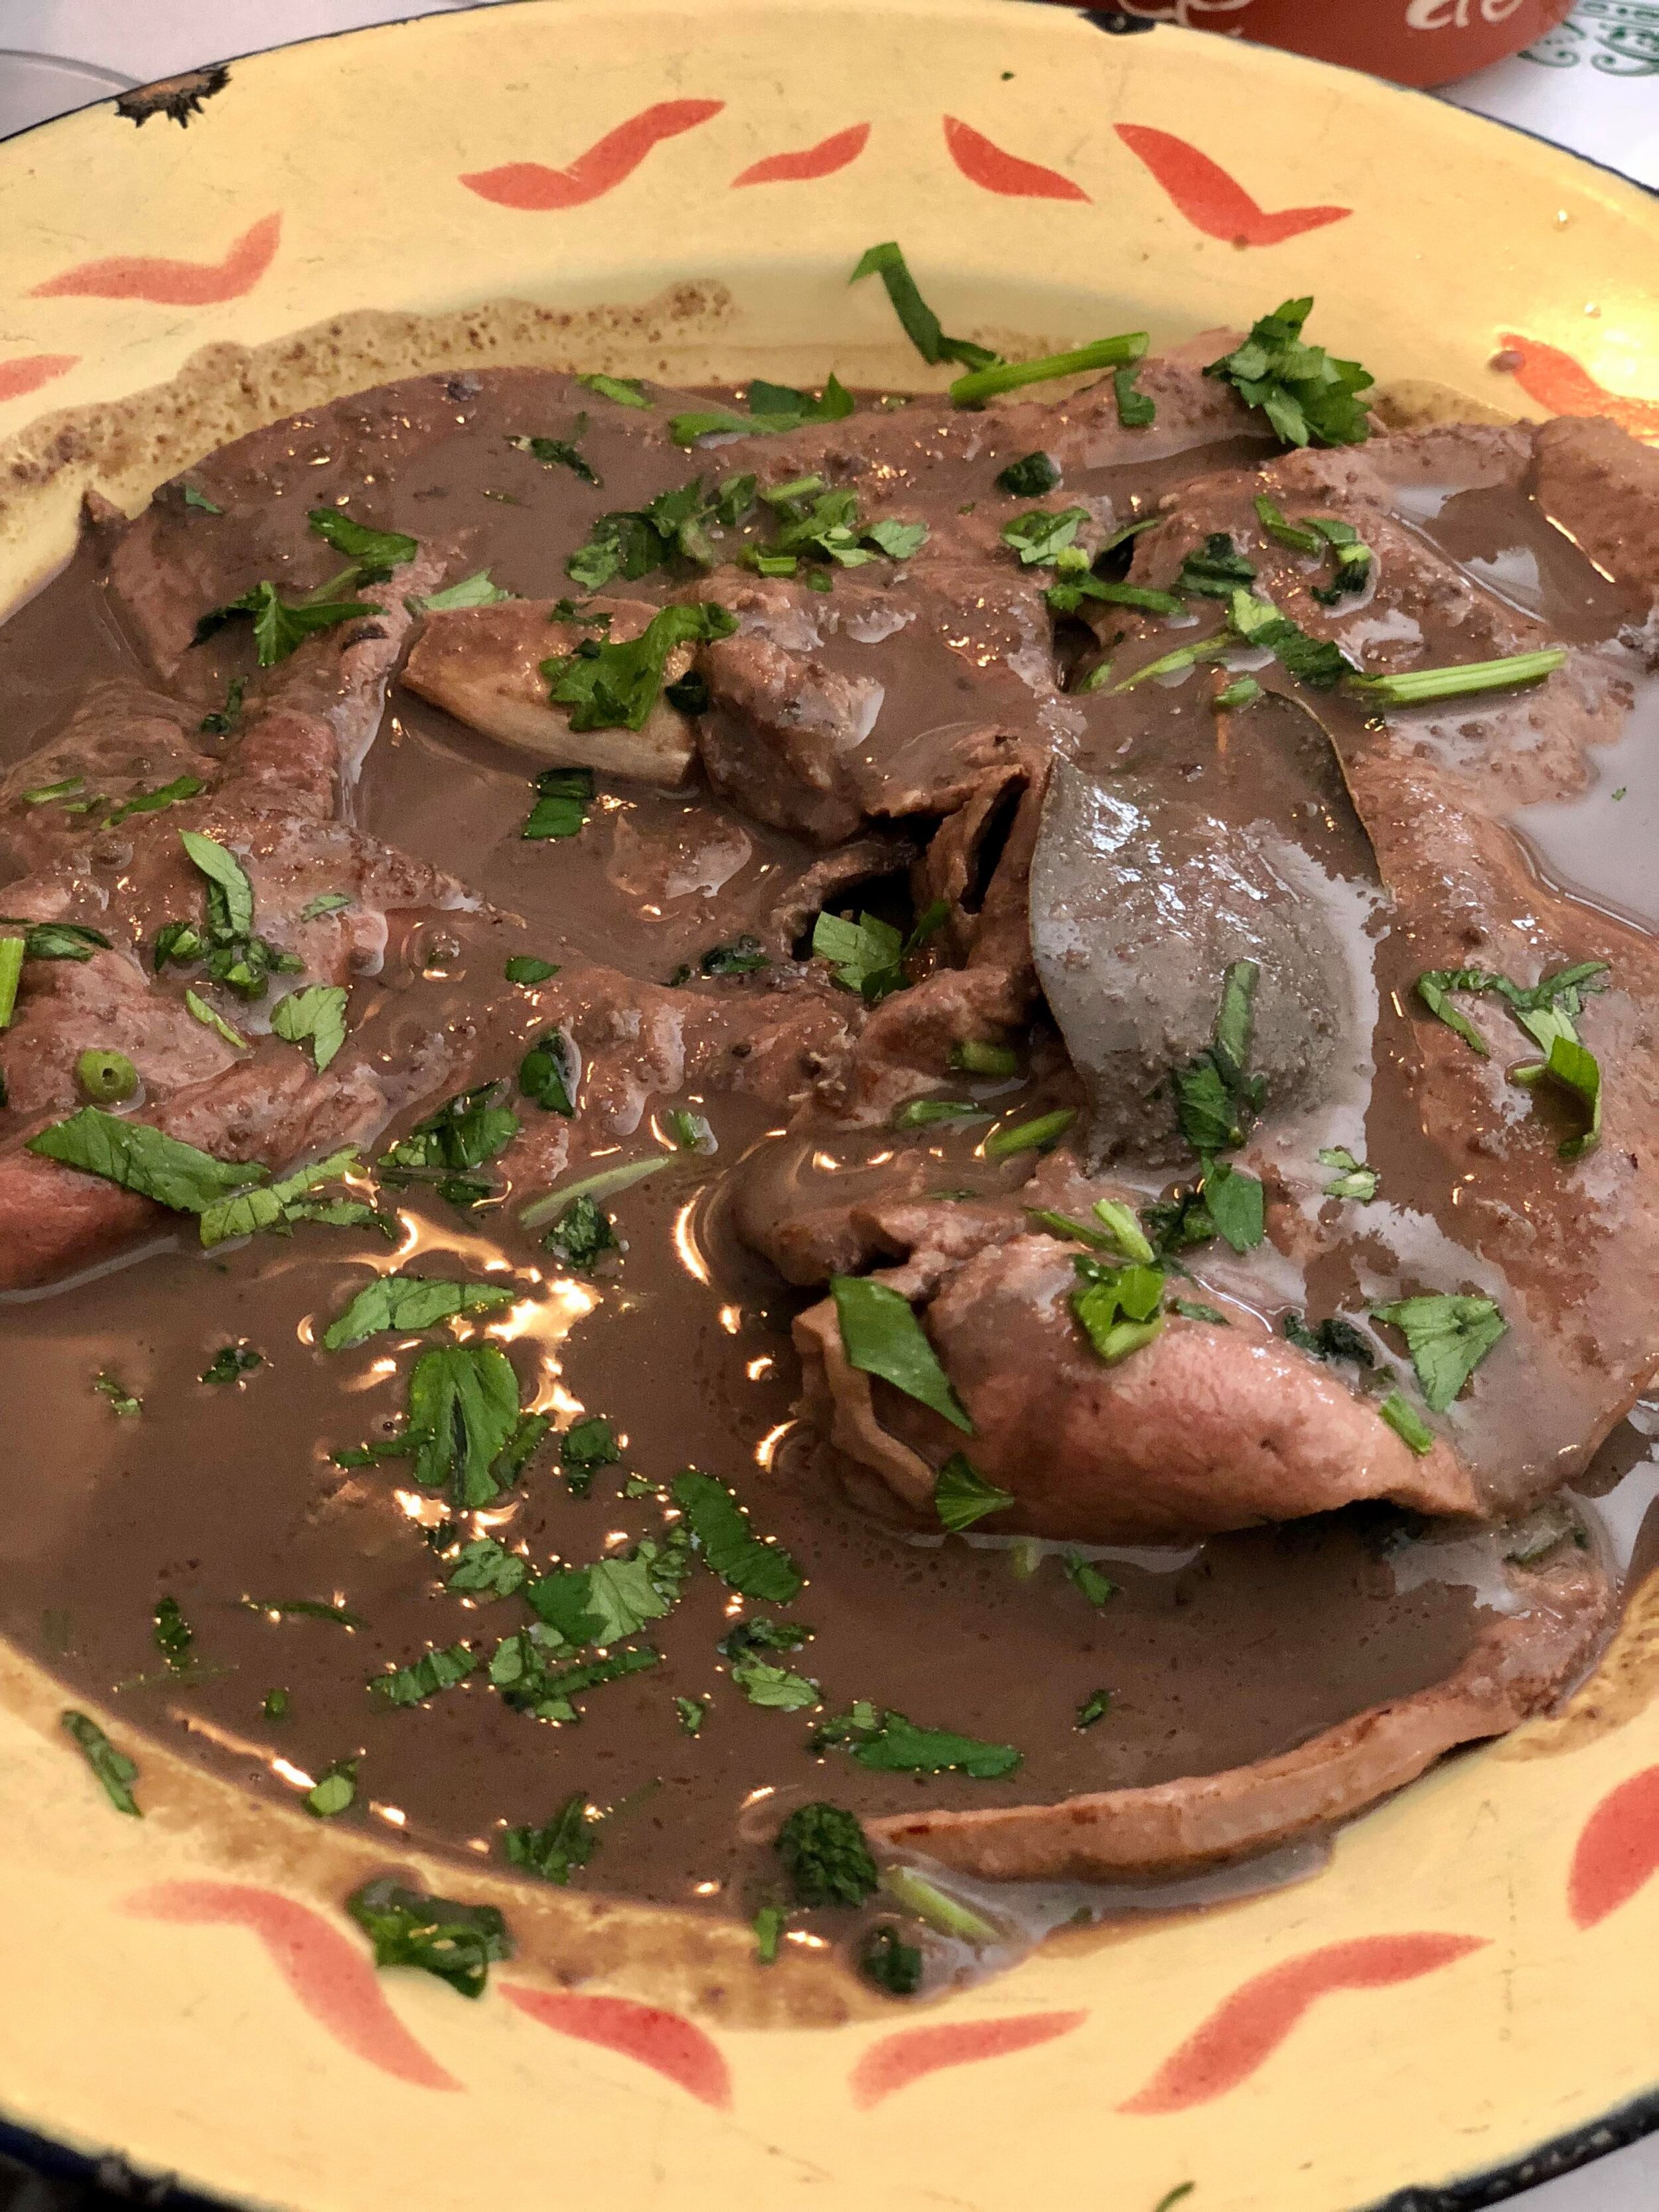 - Perhaps not as commonly consumed in North America, it seems the Portuguese have also garnered an appreciation for liver. Seen here stewed (sauteed then sauced?) liver flavored with garlic slices, bay leaves, and parsley. An fortifying meal, if somewhat distinct in taste (slightly metallic) and texture (chewy) for those not accustomed to eating liver. As liver was also something I myself grew up eating, however, I enjoyed the dish.